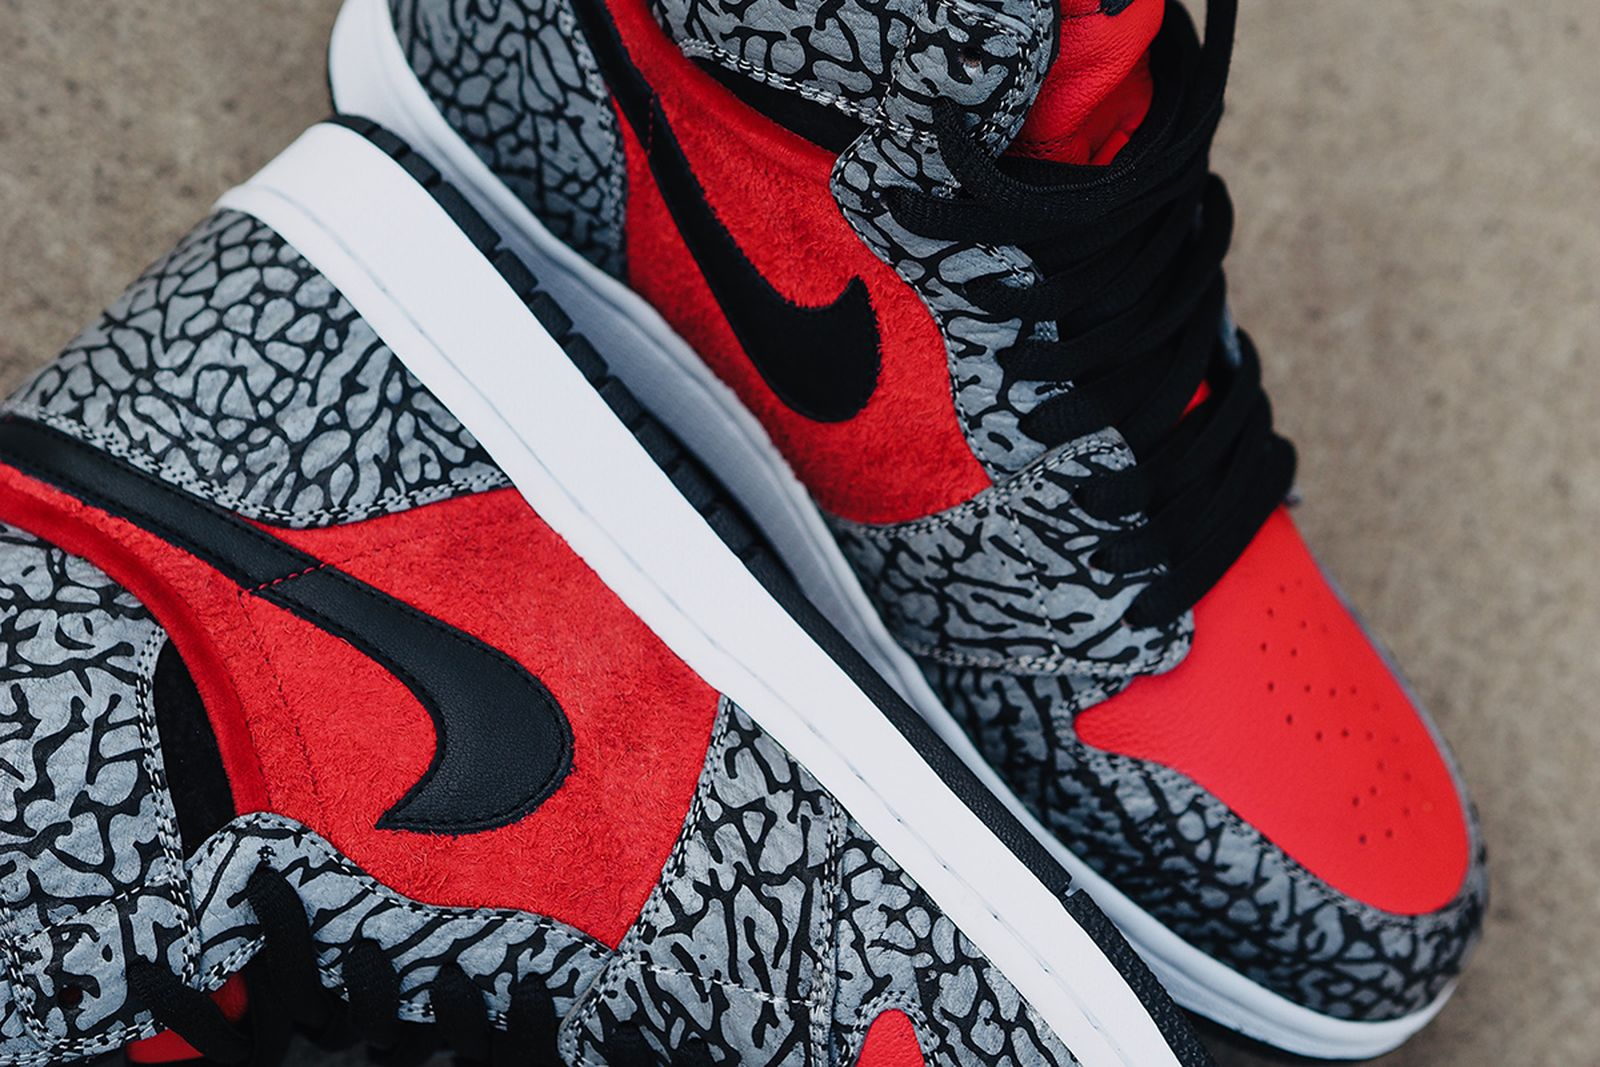 supreme nike sb air jordan 1 high red cement release date price BespokeIND nike air jordan 1